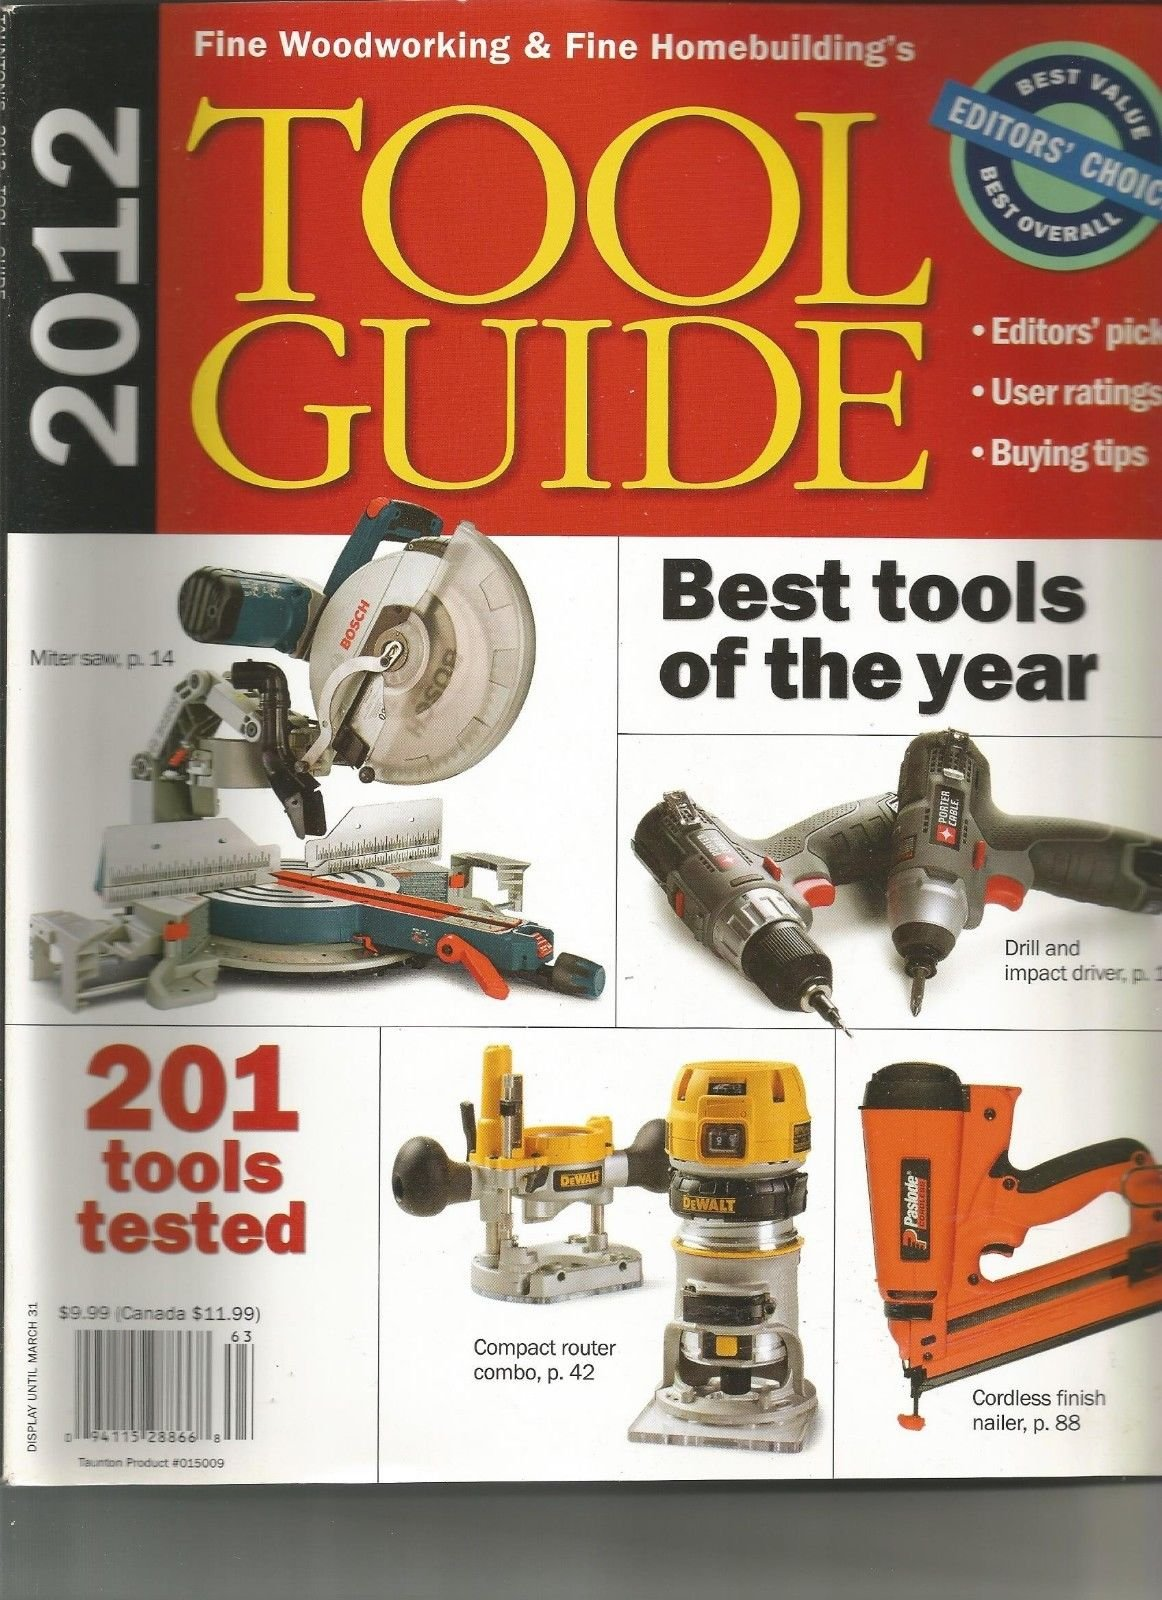 TAUNTON'S FINE WOOD WORKING, 2012, TOOL GUIDE ~